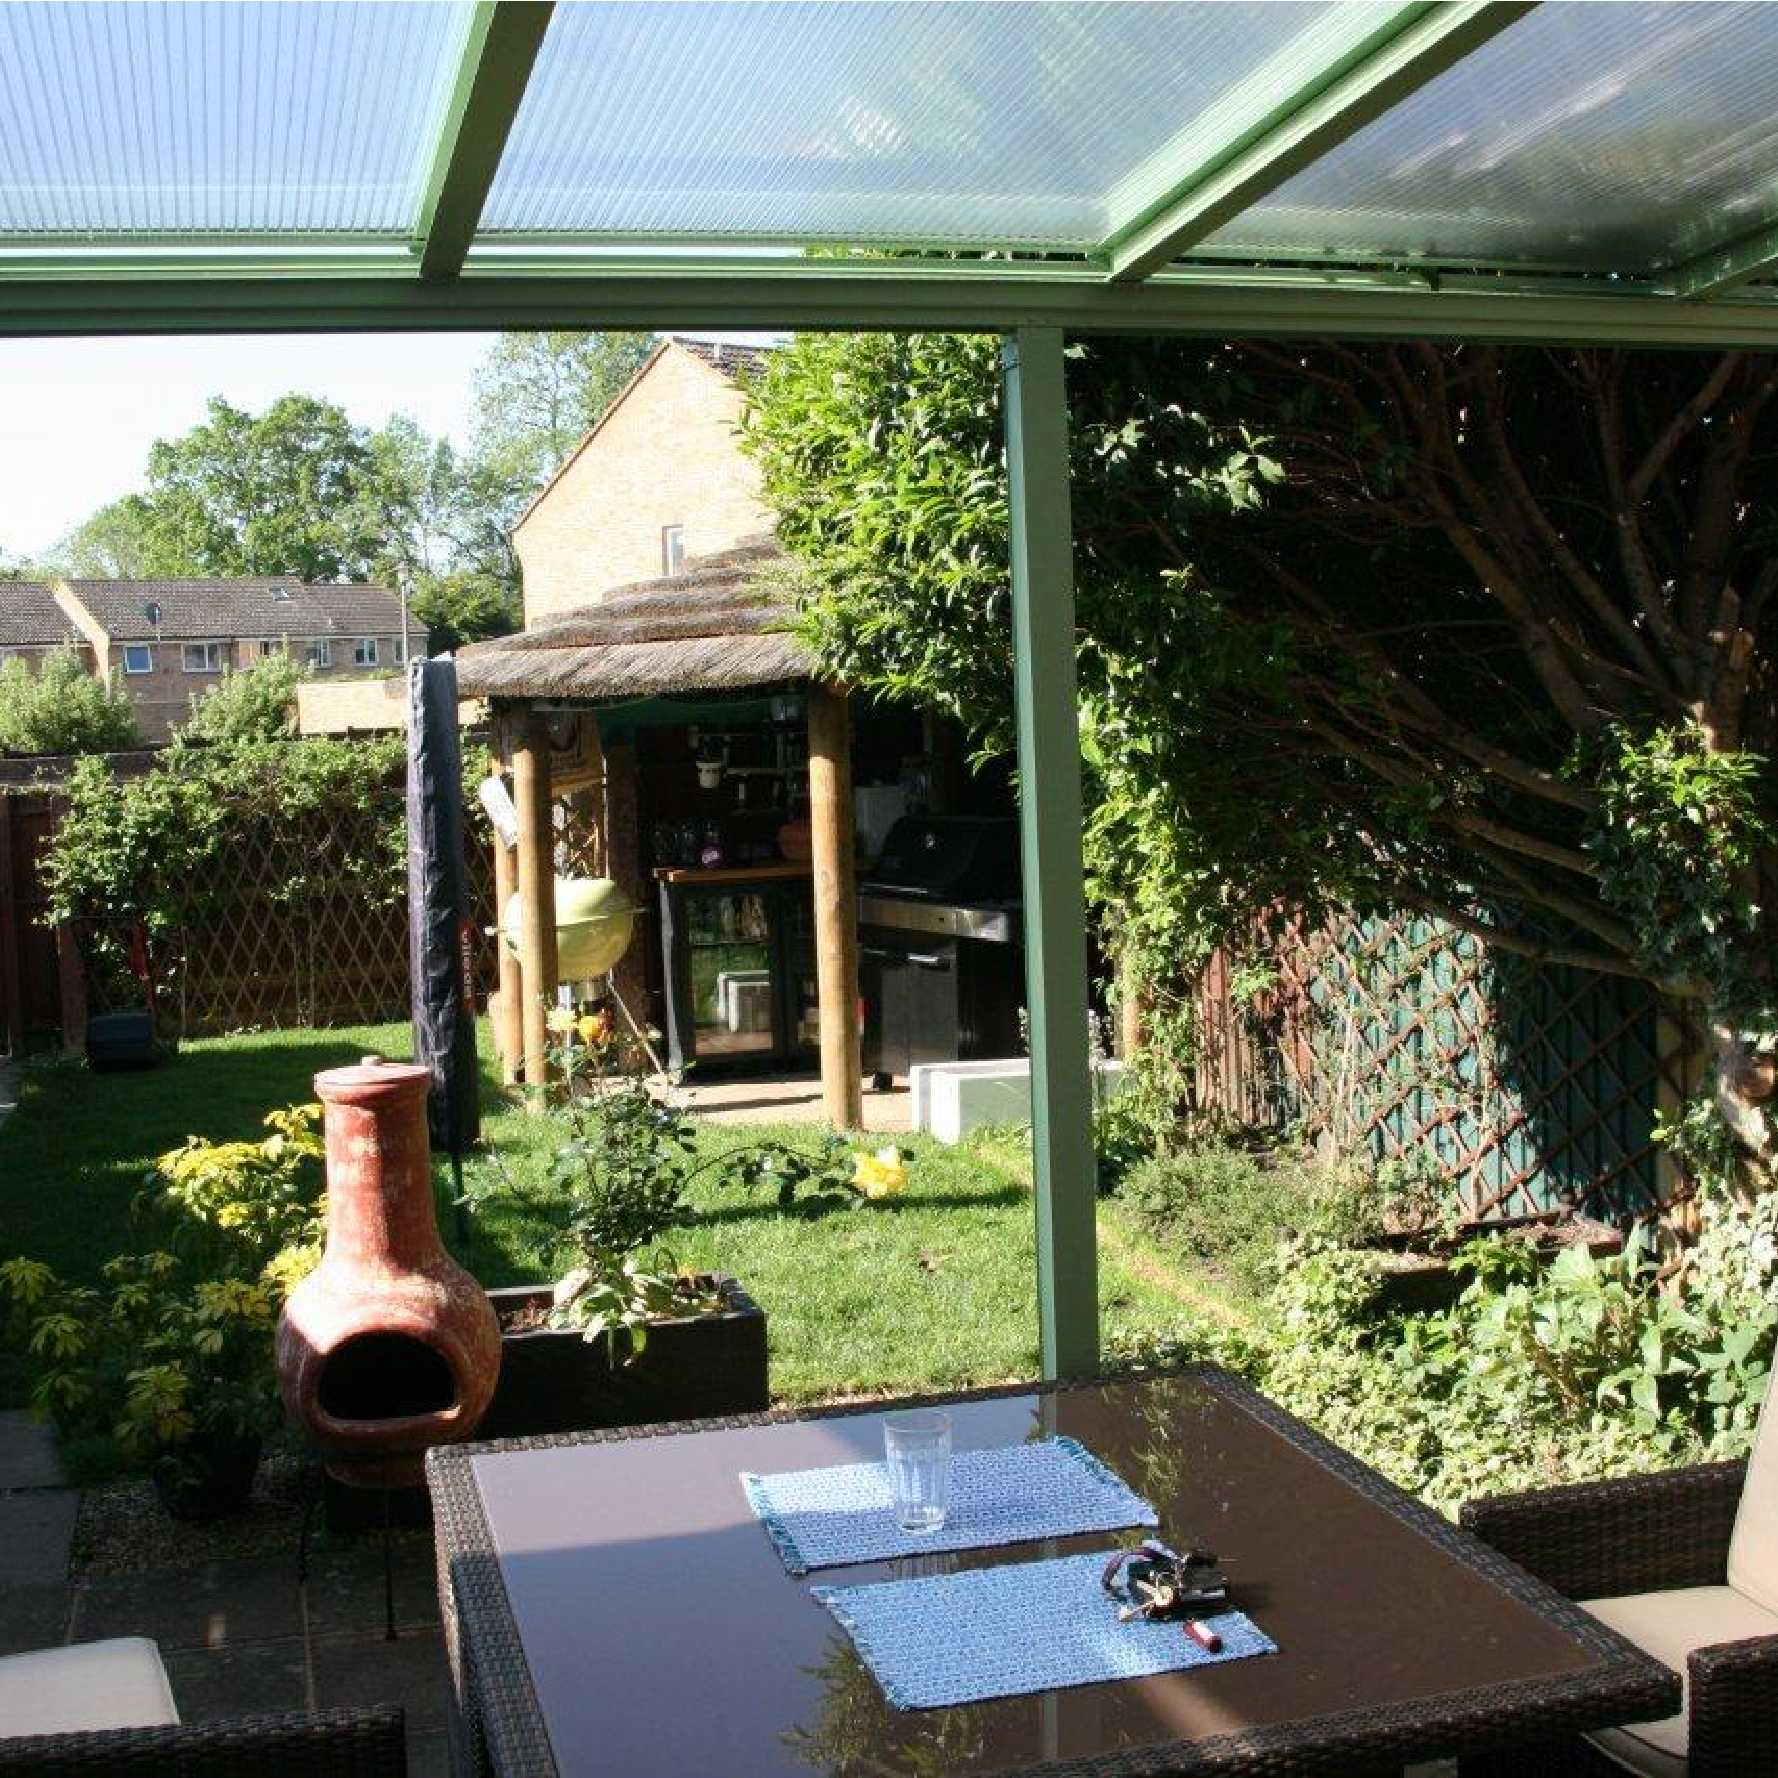 Affordable Omega Smart Lean-To Canopy with 16mm Polycarbonate Glazing - 9.1m (W) x 4.5m (P), (5) Supporting Posts